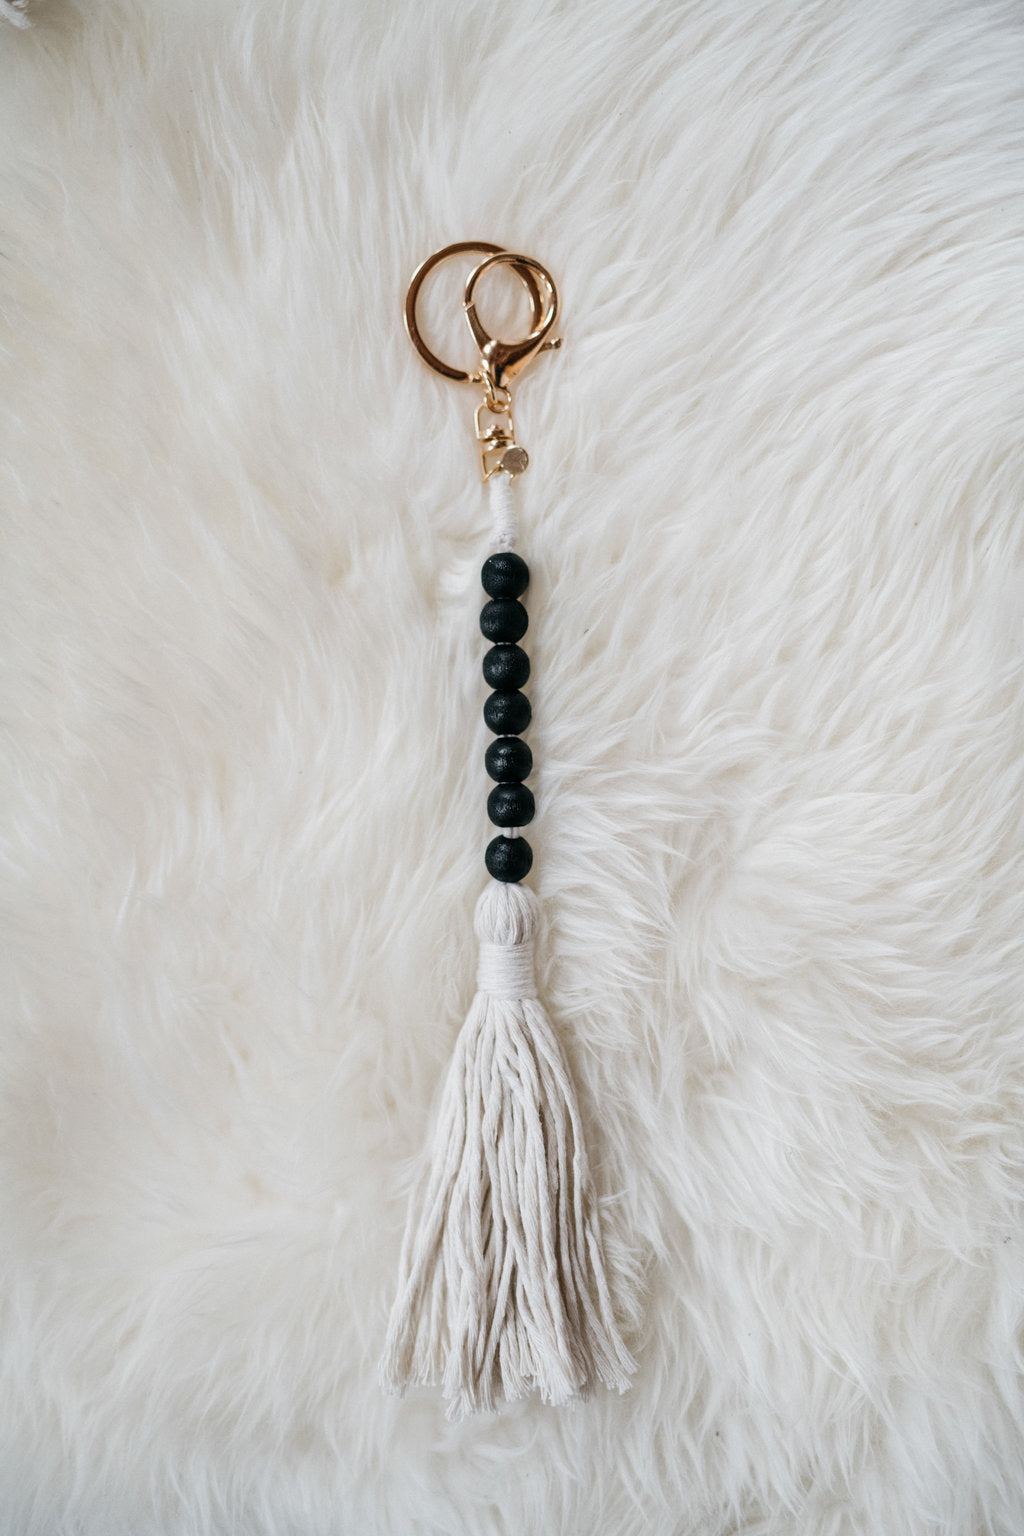 LUCKY 7 Bead Garland Keychain (Black) (Gold)